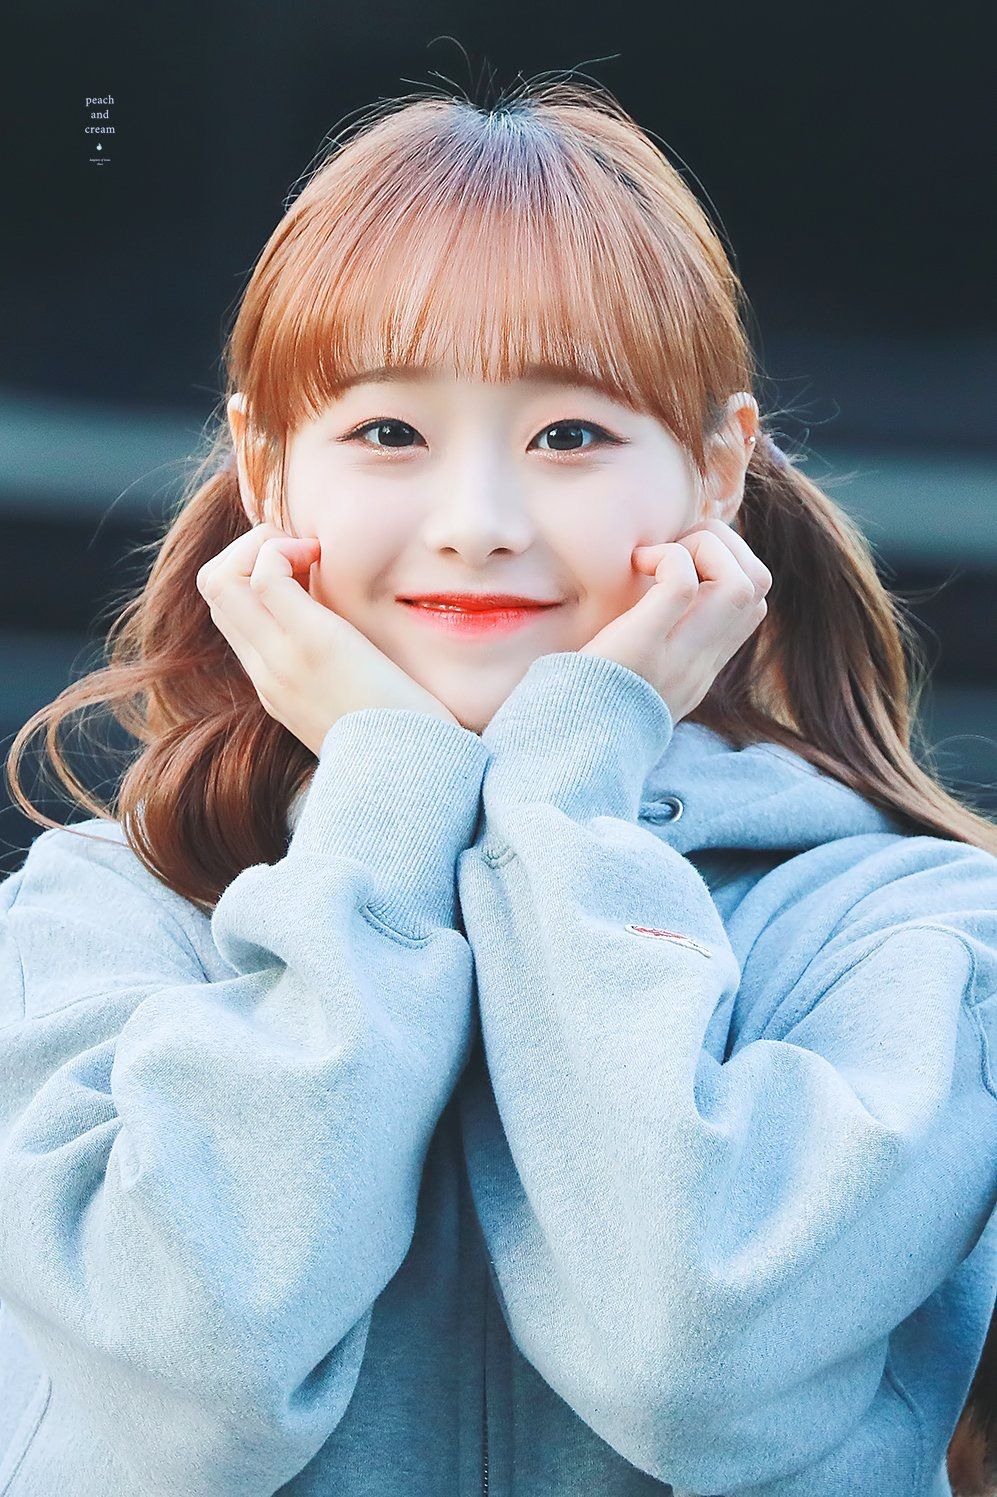 Awesome Chuu Kpop wallpapers to download for free greenvirals